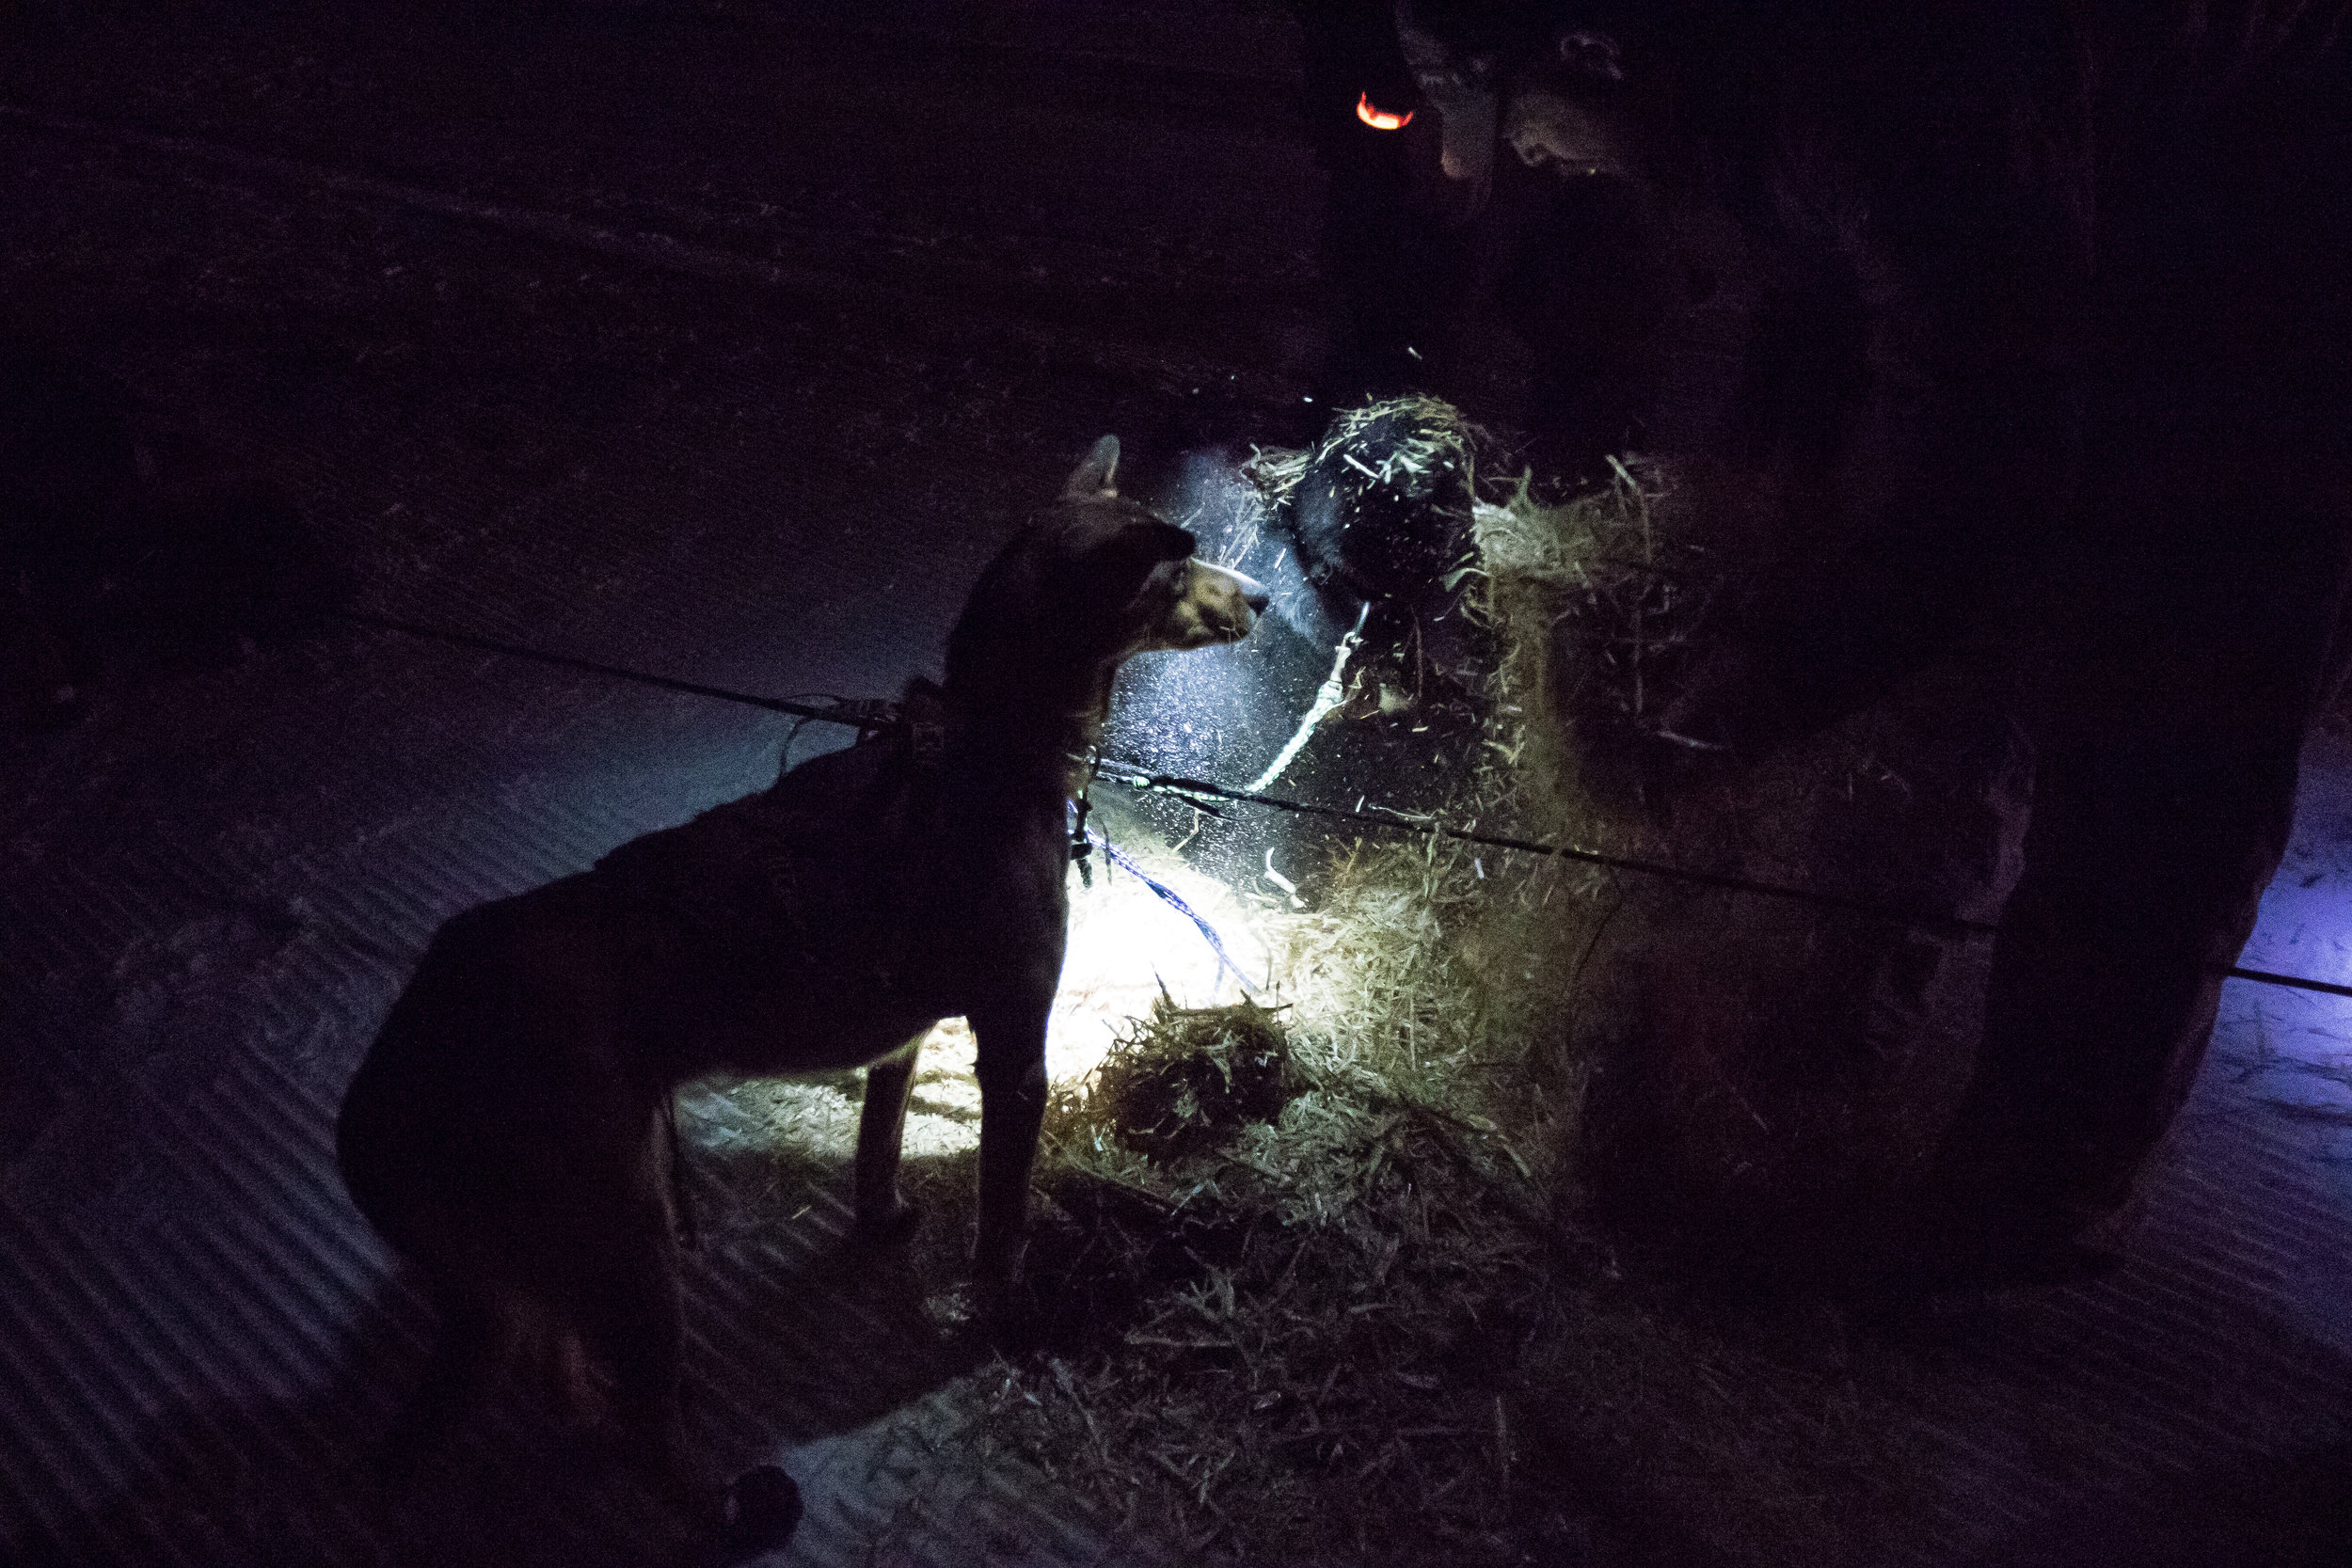 300-mile musher Damon Ramaker lays down a layer of hay bedding for his dogs late Saturday night at checkpoint one.